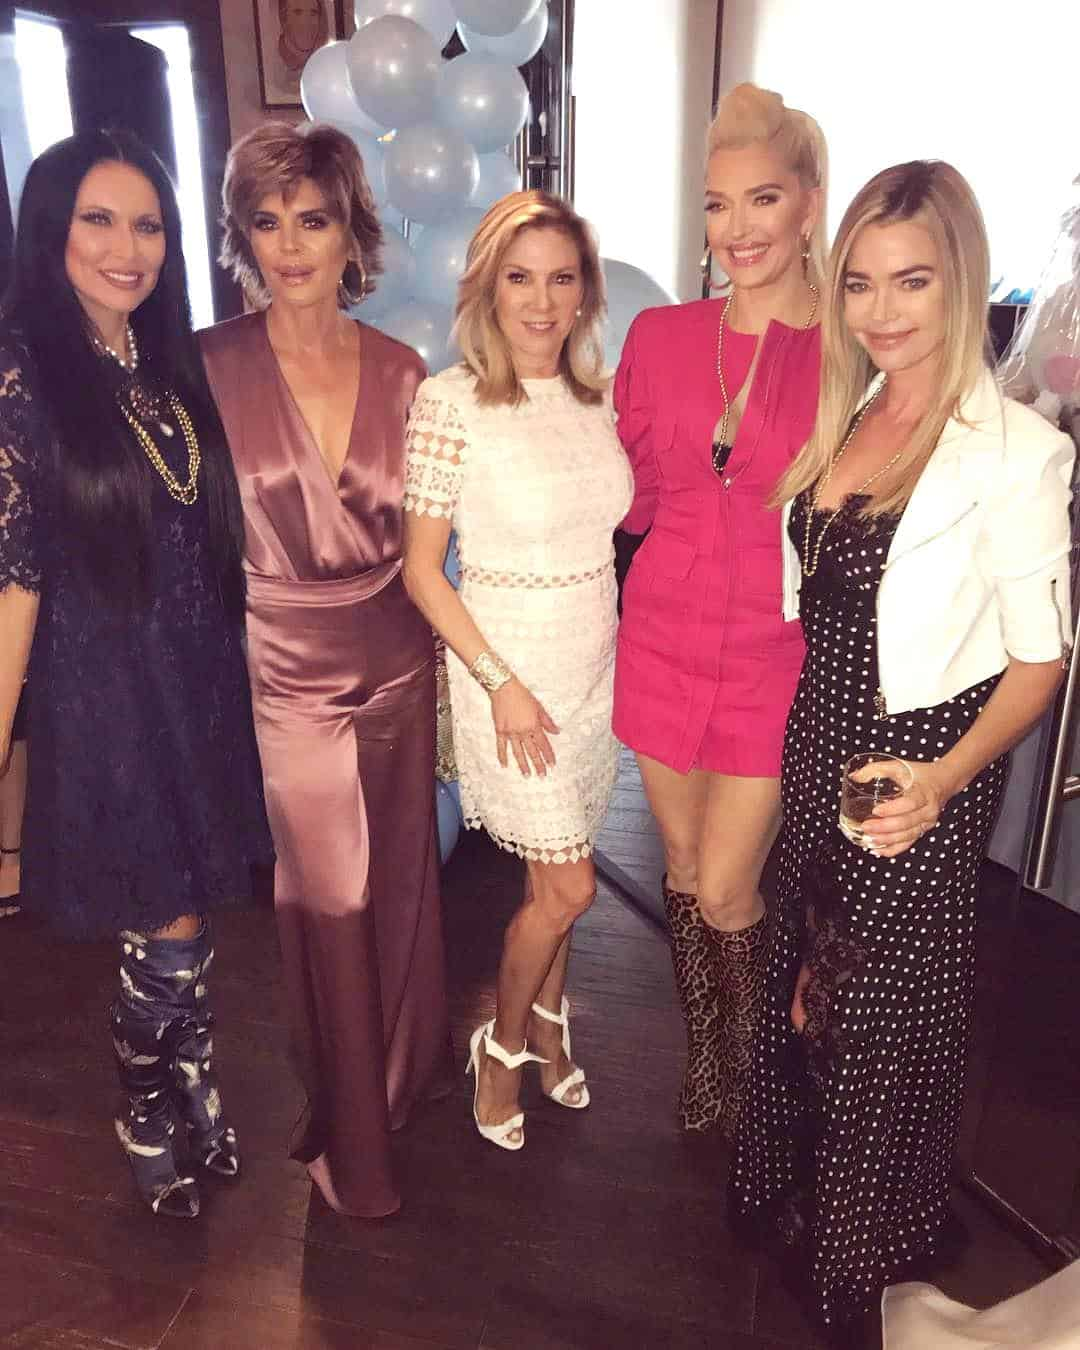 Leeanne Locken Lisa Rinna Ramona Singer Erika Jayne and Denise Richards